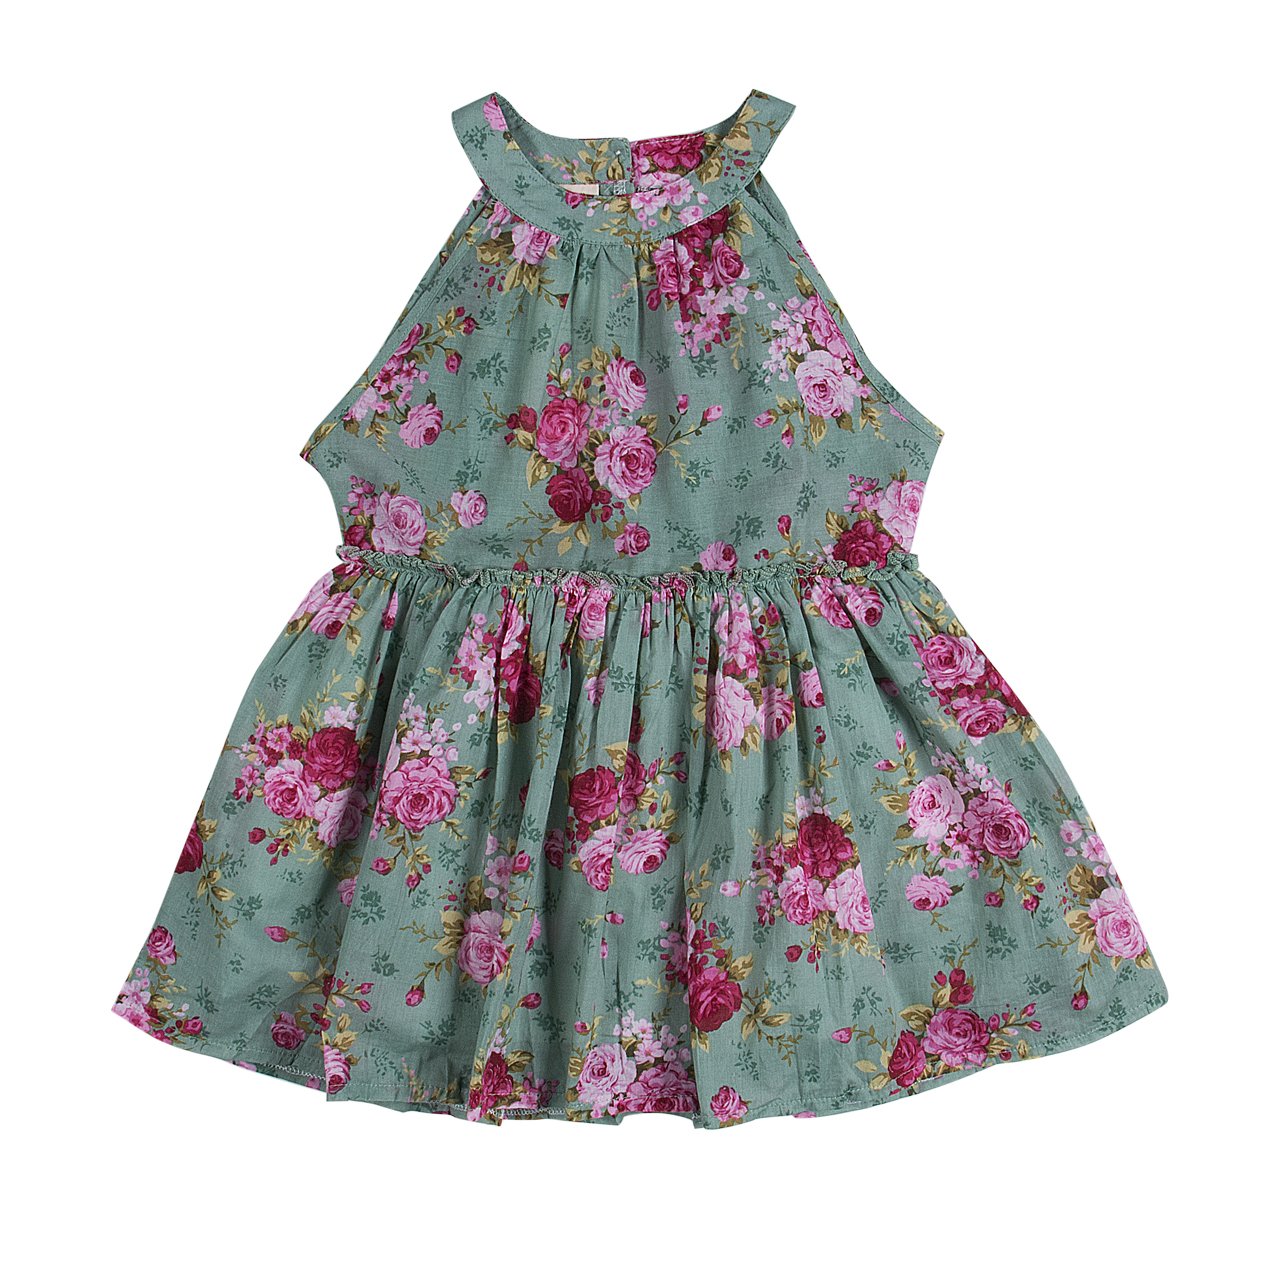 Newborn Baby Girl Clothes Kids Floral Dresses Baby Outfit Party Princess Dress | EBay